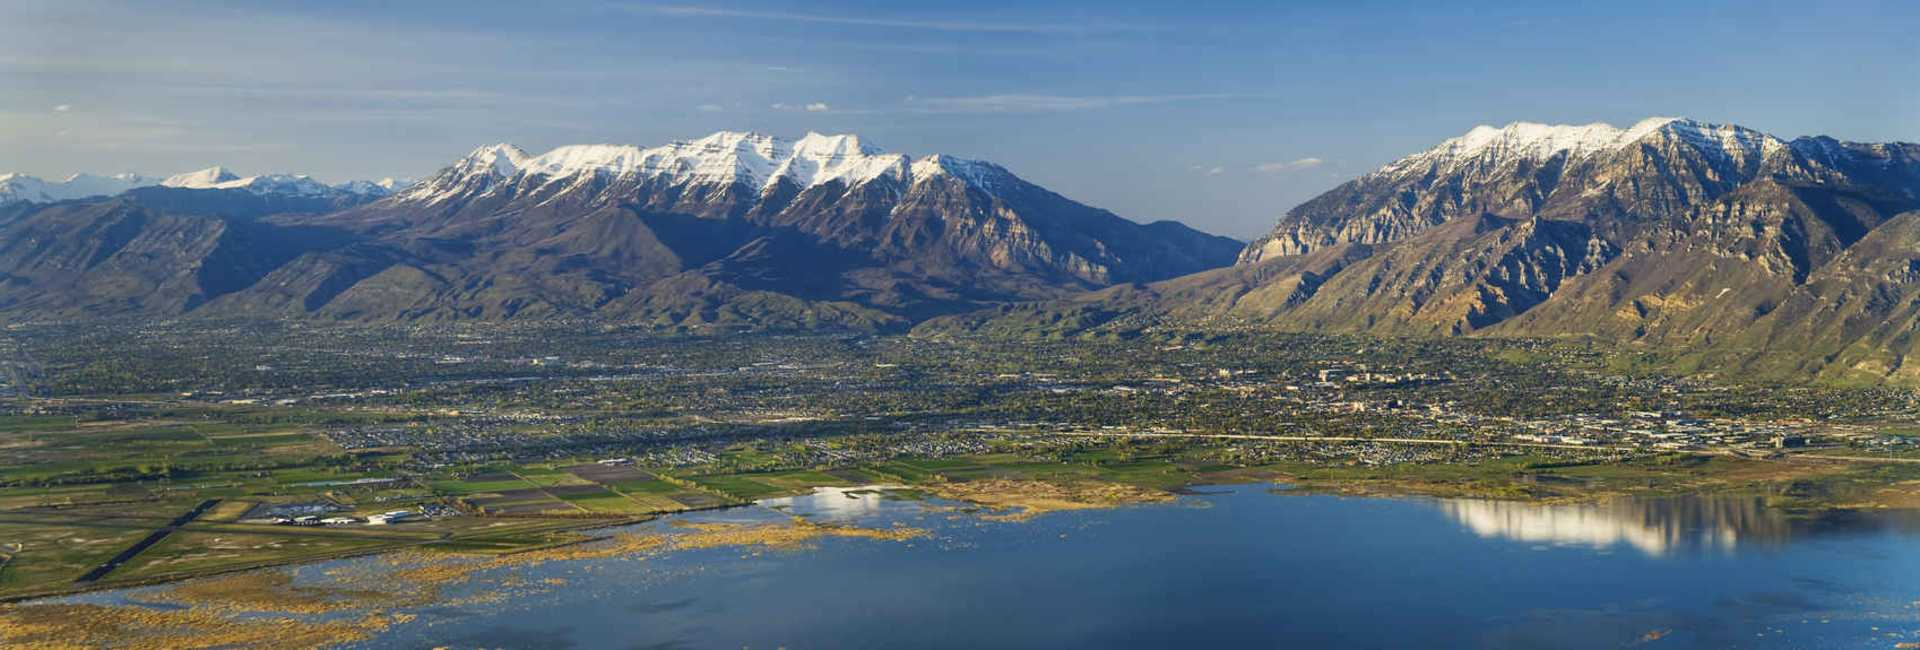 Utah Valley wide view